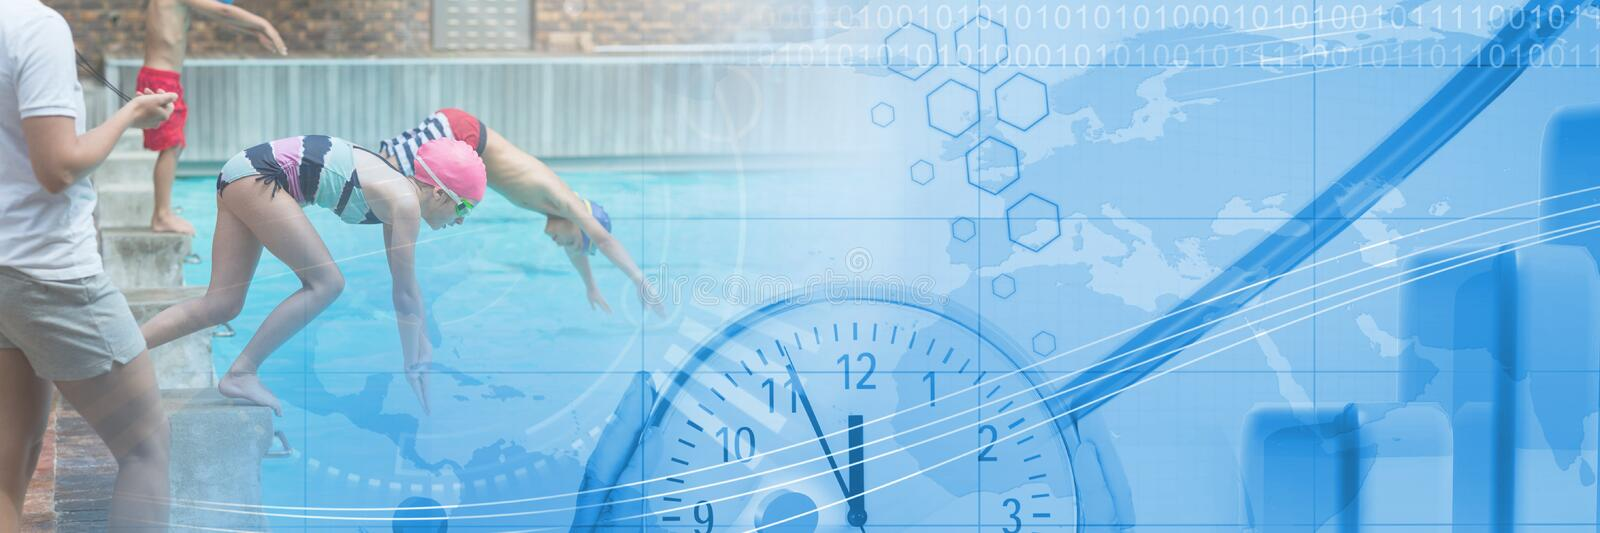 Children diving into Swimming pool with transition and time clock and map of world stock photography